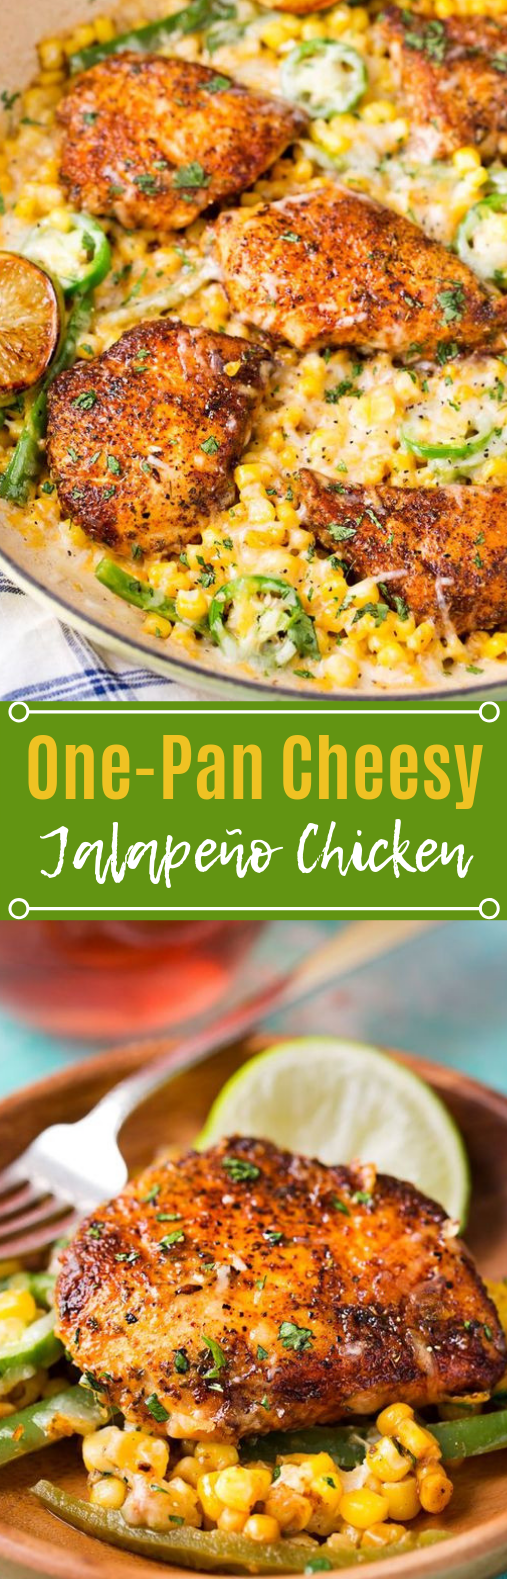 One Pan Cheesy Jalapeño Chicken #dinner #easyrecipe